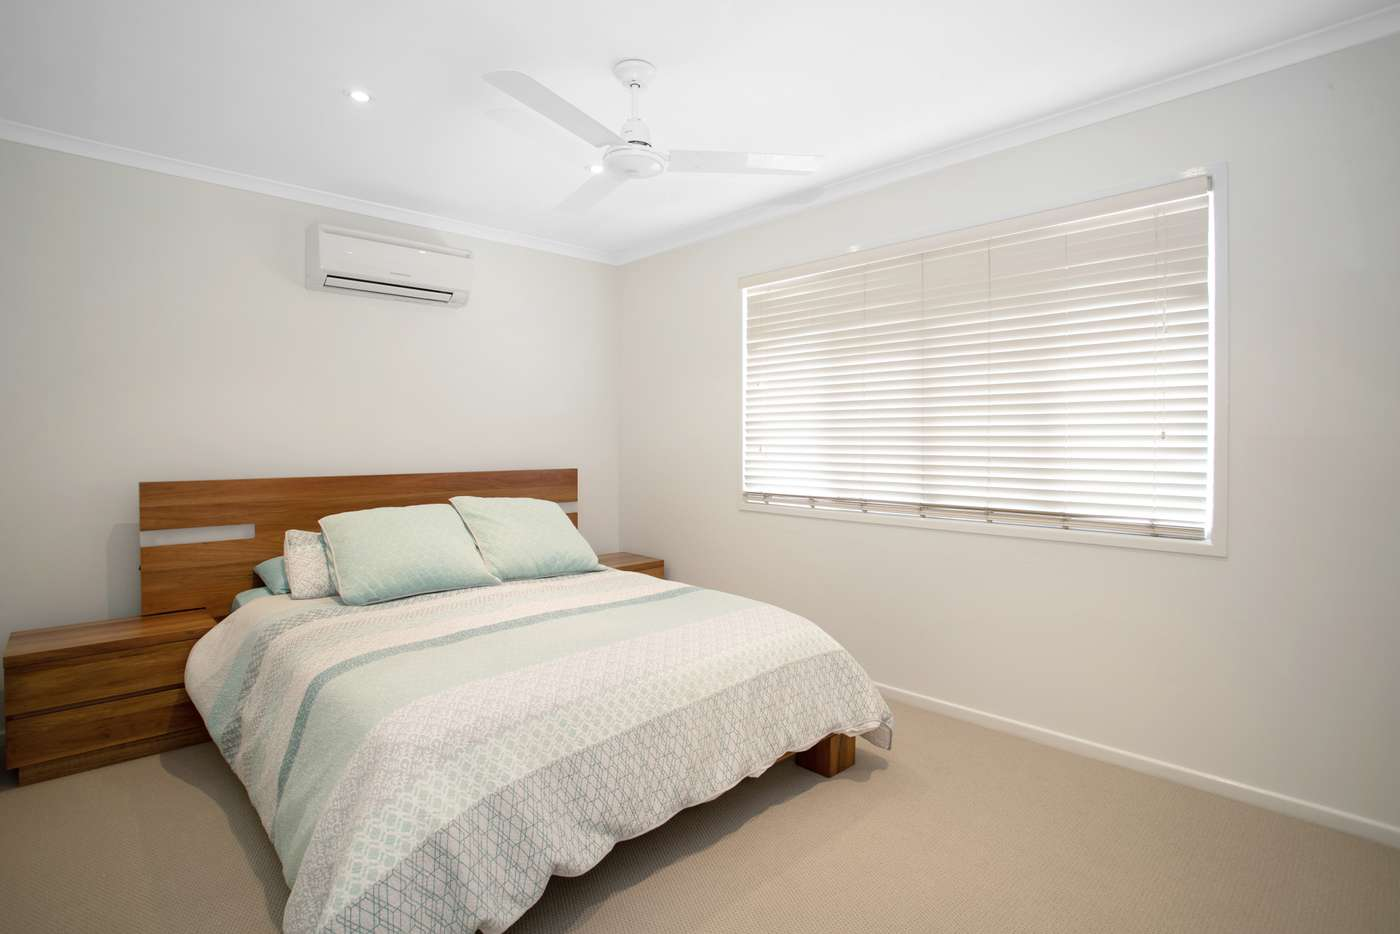 Seventh view of Homely house listing, 17 Charles Hodge Avenue, Mount Pleasant QLD 4740